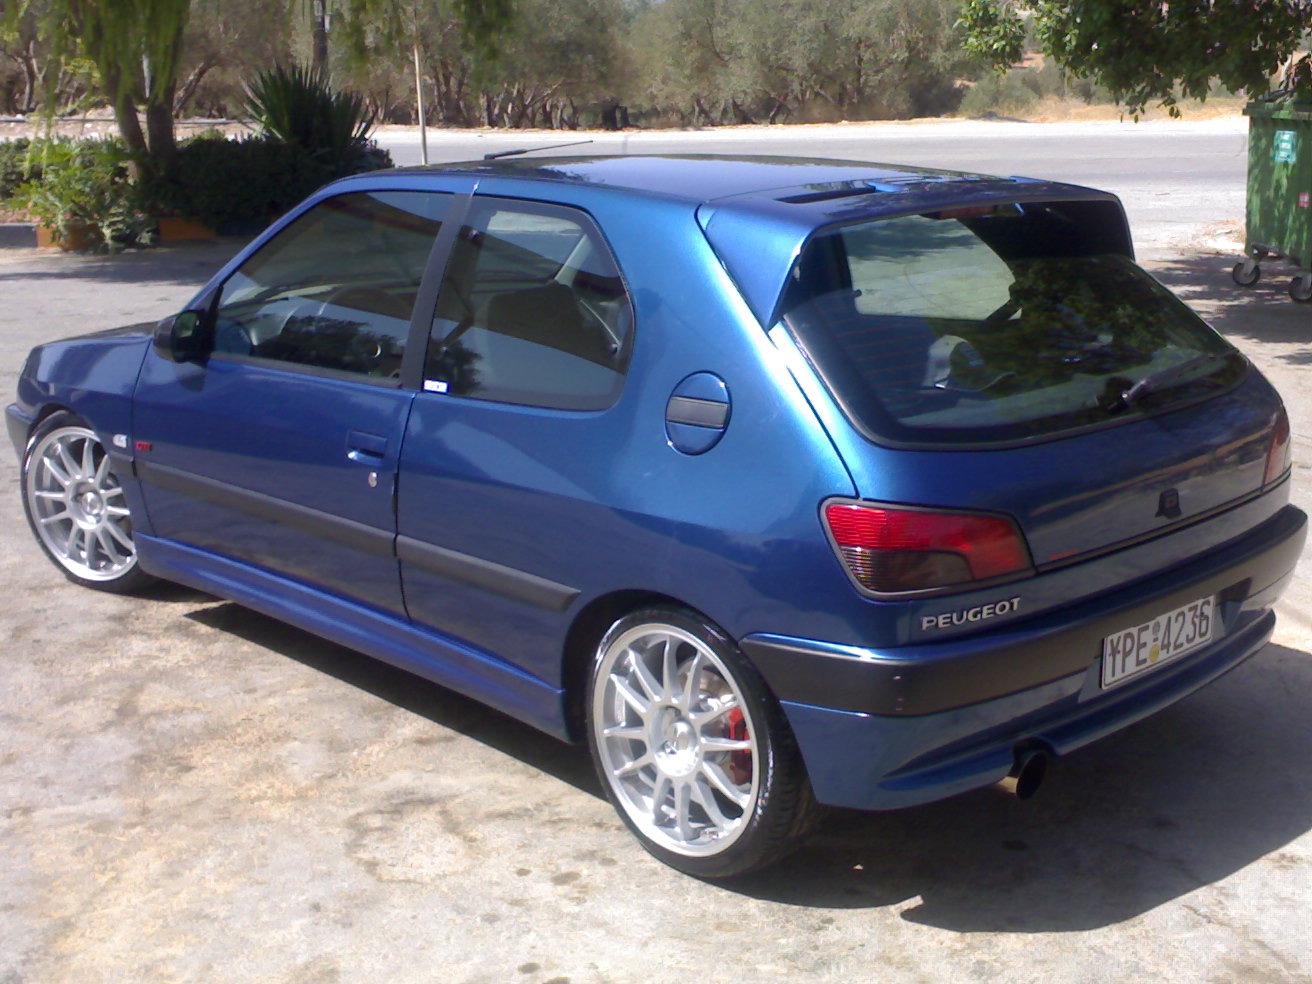 peugeot 306 pictures #13